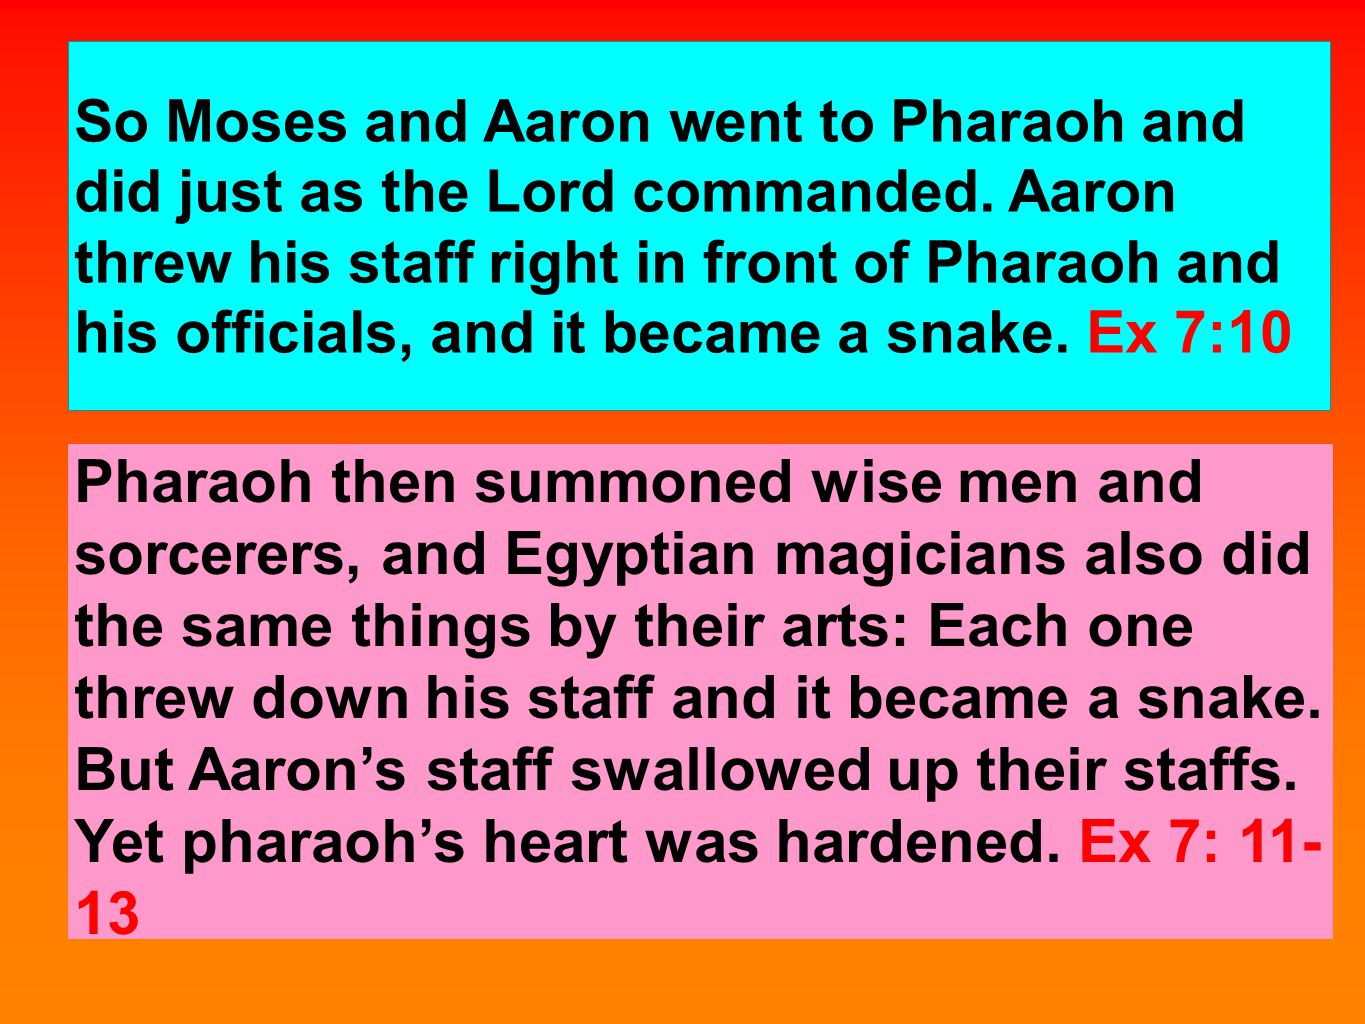 So Moses and Aaron went to Pharaoh and did just as the Lord commanded.